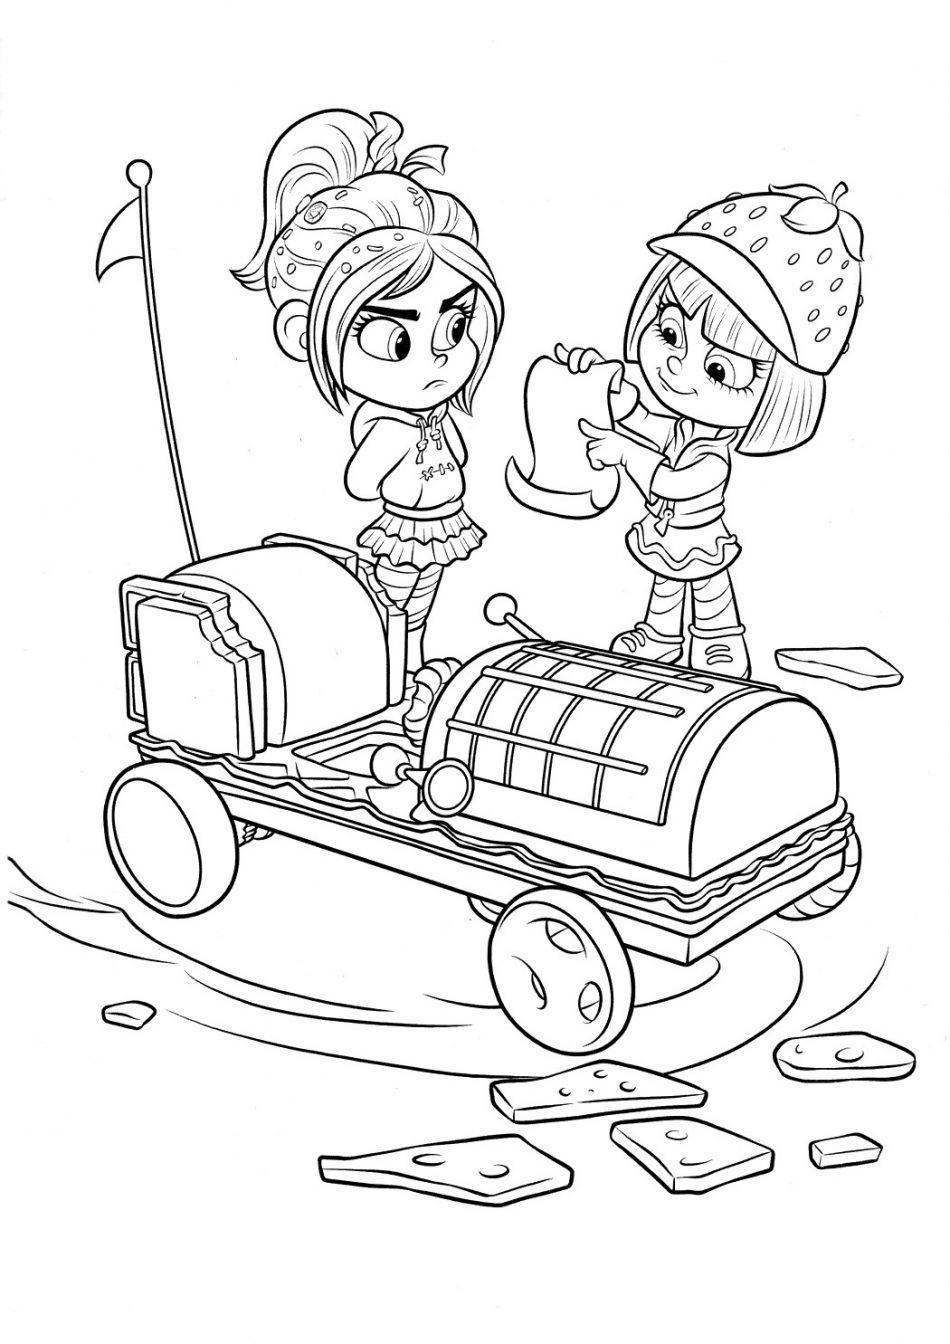 Taffyta And Vanellope Coloring Page Disney Coloring Pages Coloring Books Princess Coloring Pages